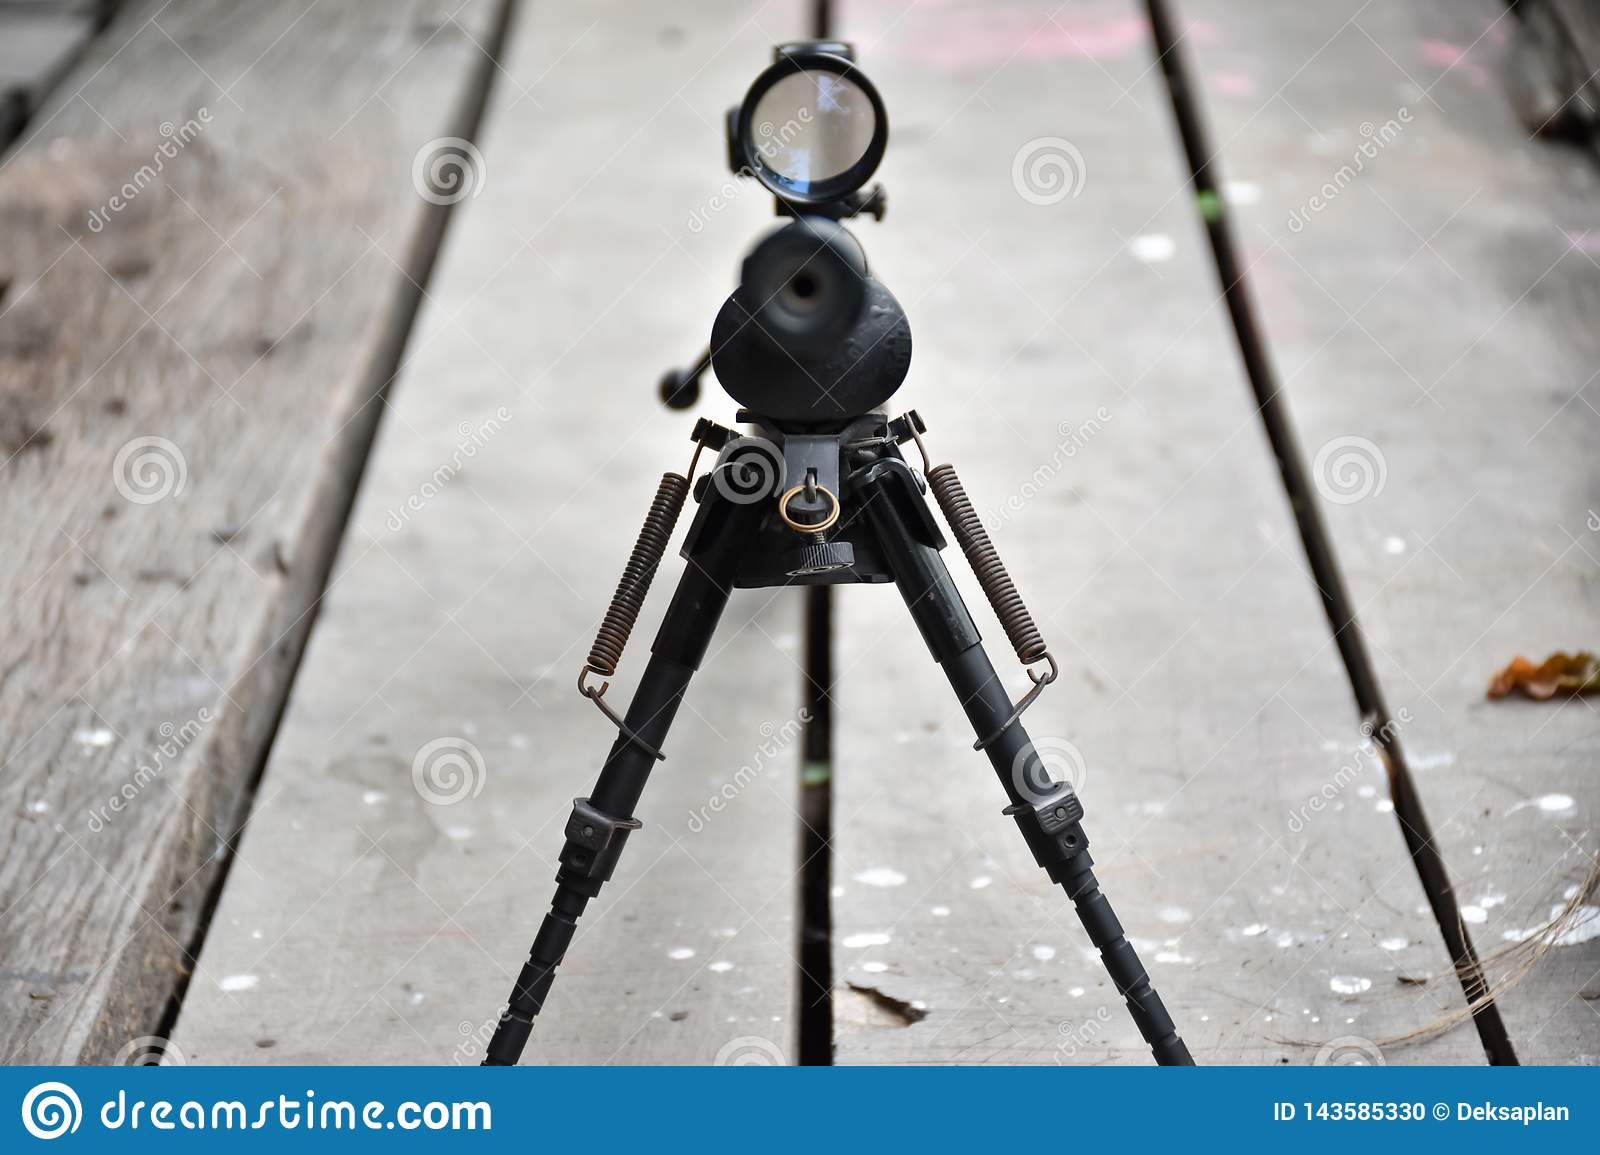 Rifle with a scope and bipod